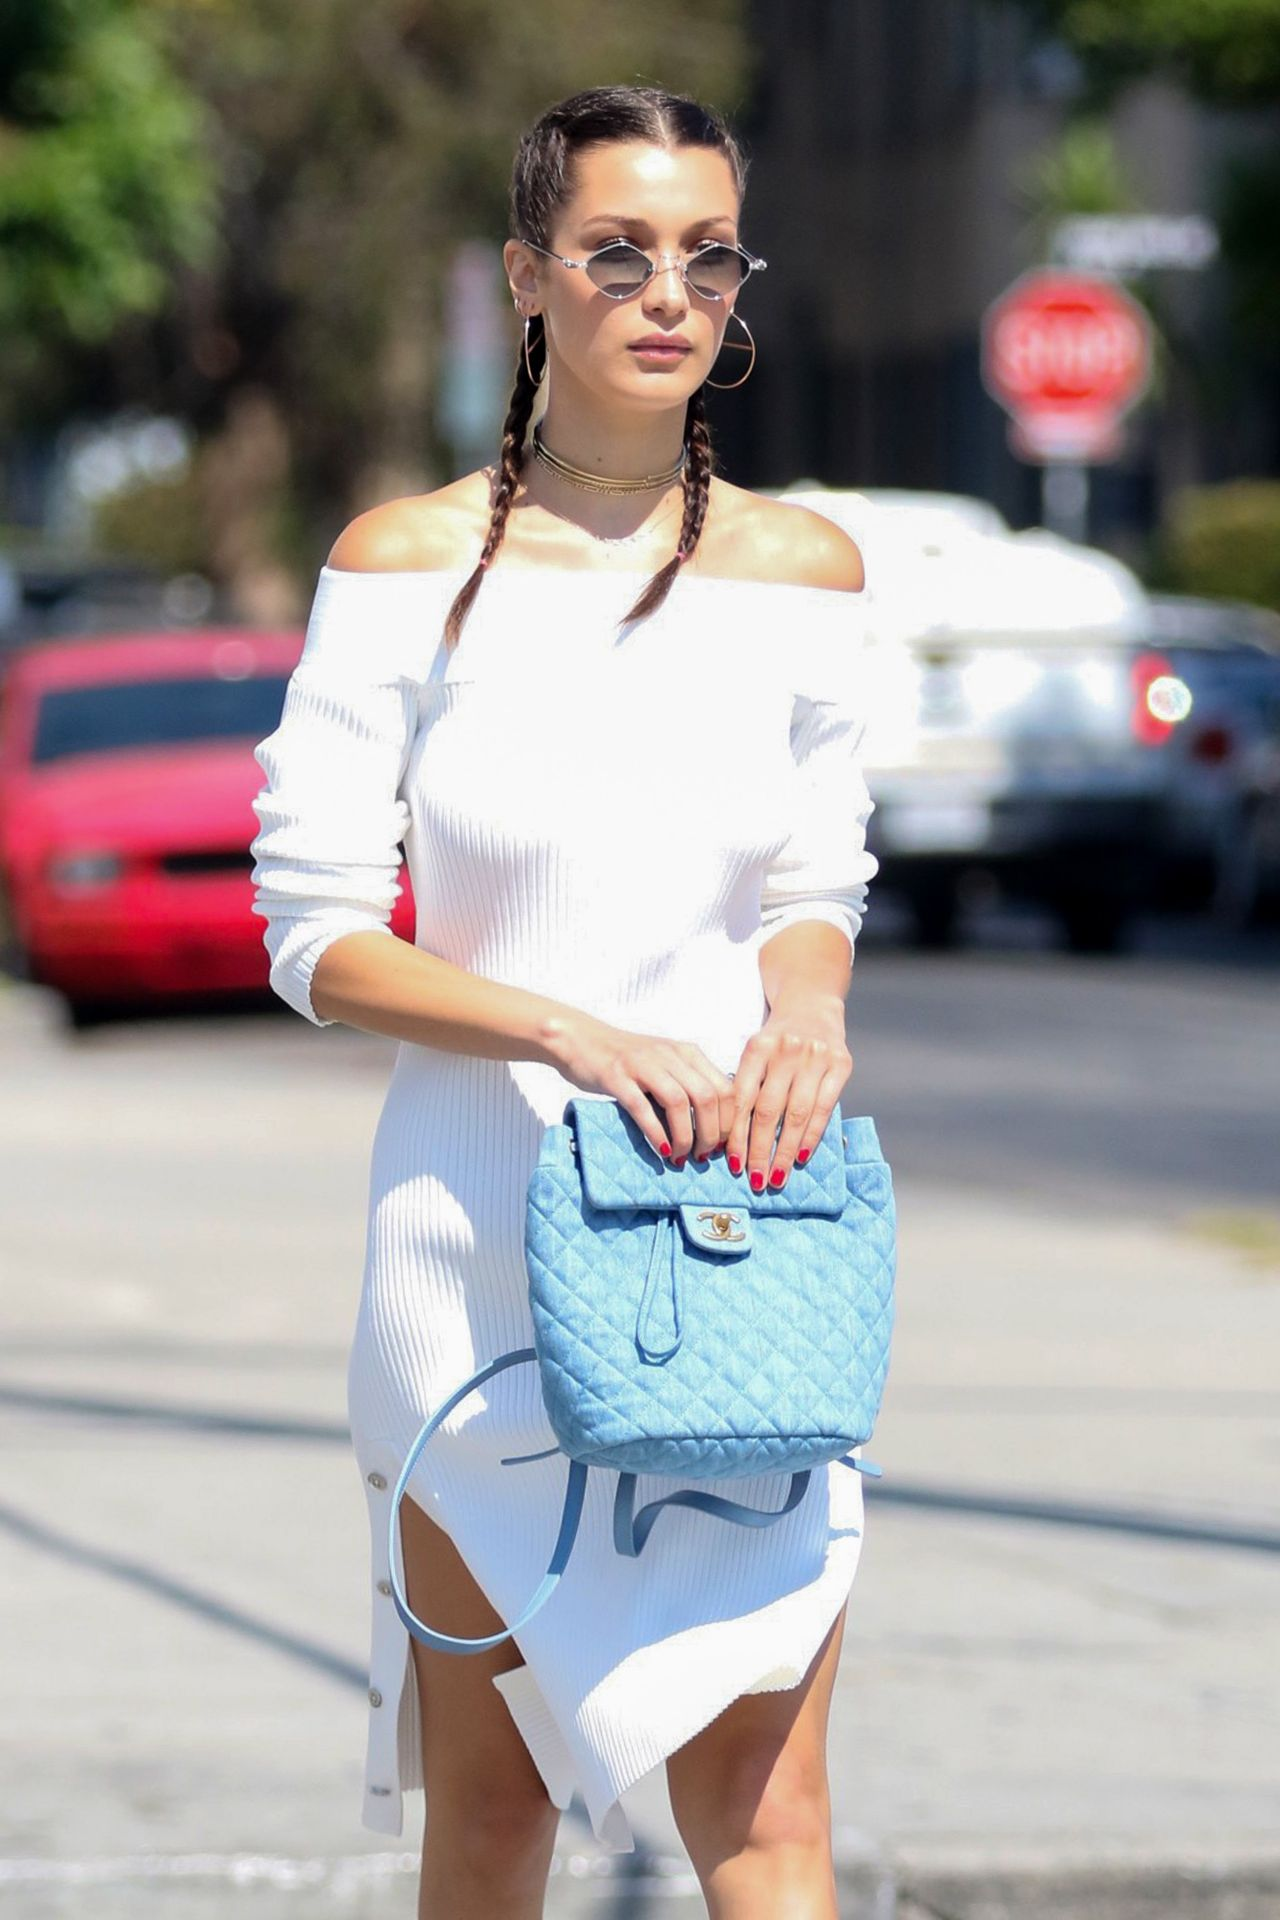 bella-hadid-summer-street-style-los-angeles-ca-08-03-2018-13